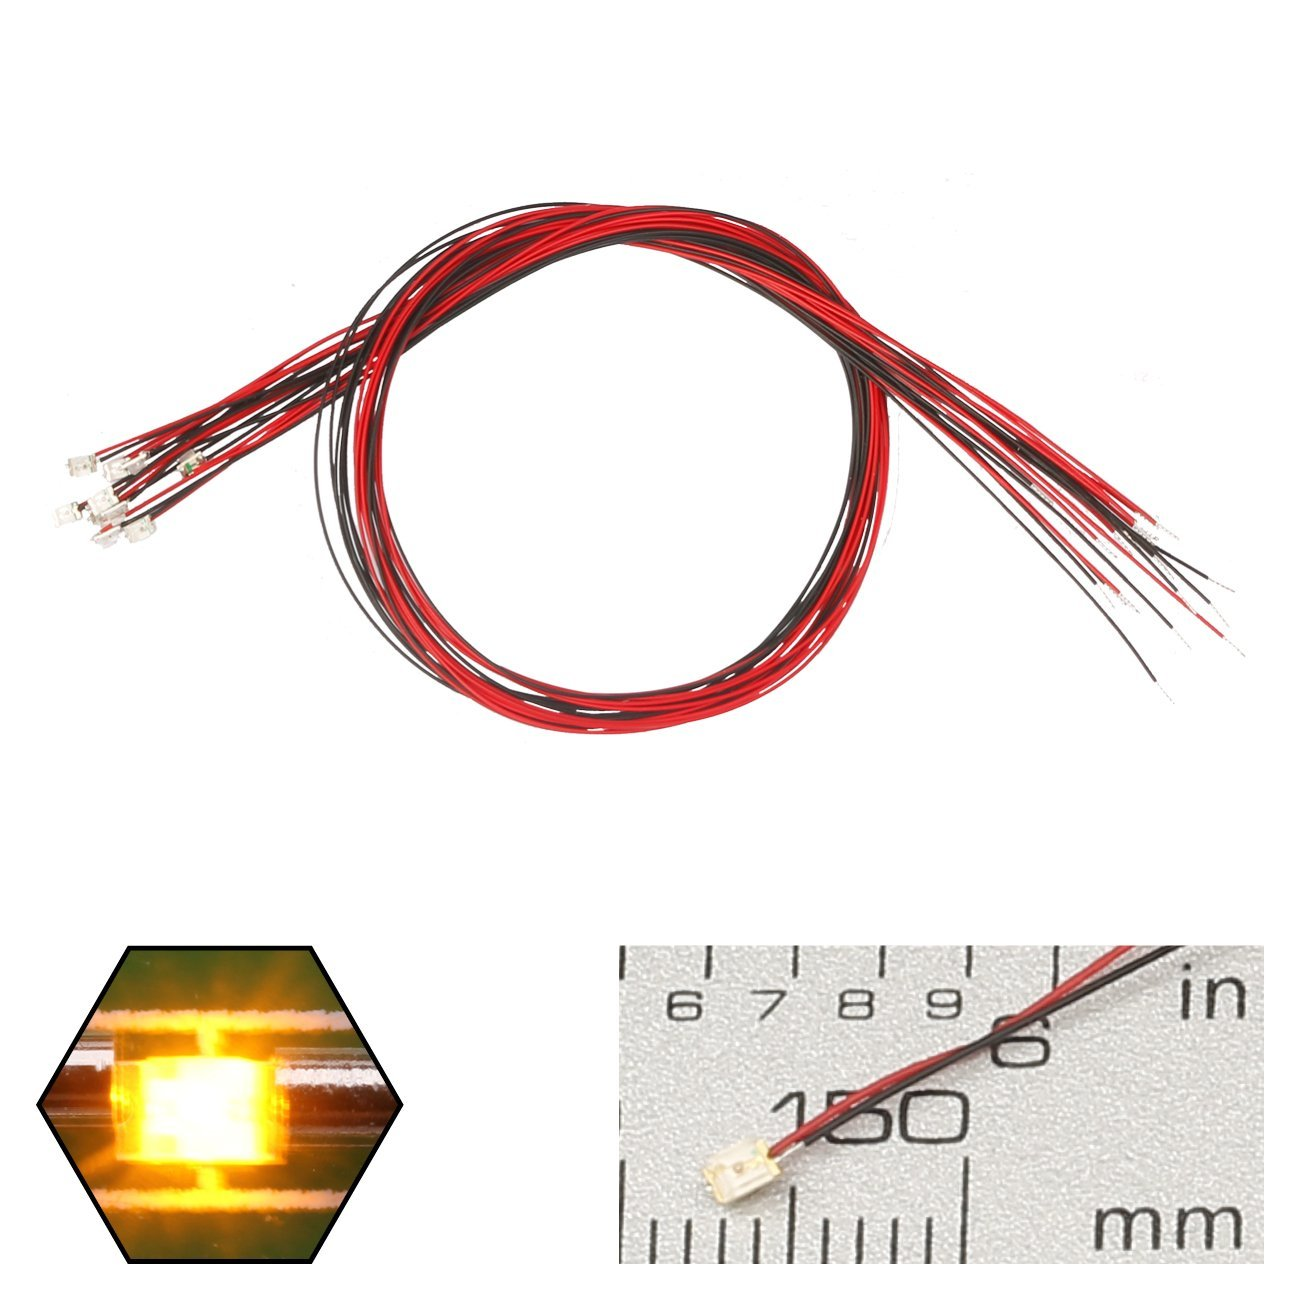 Hot Sale 100pcs 5mm Rgb Super Bright Led Common Anode 4 Pins Red Green Blue Water Clear Neither Too Hard Nor Too Soft Electronic Components & Supplies Active Components